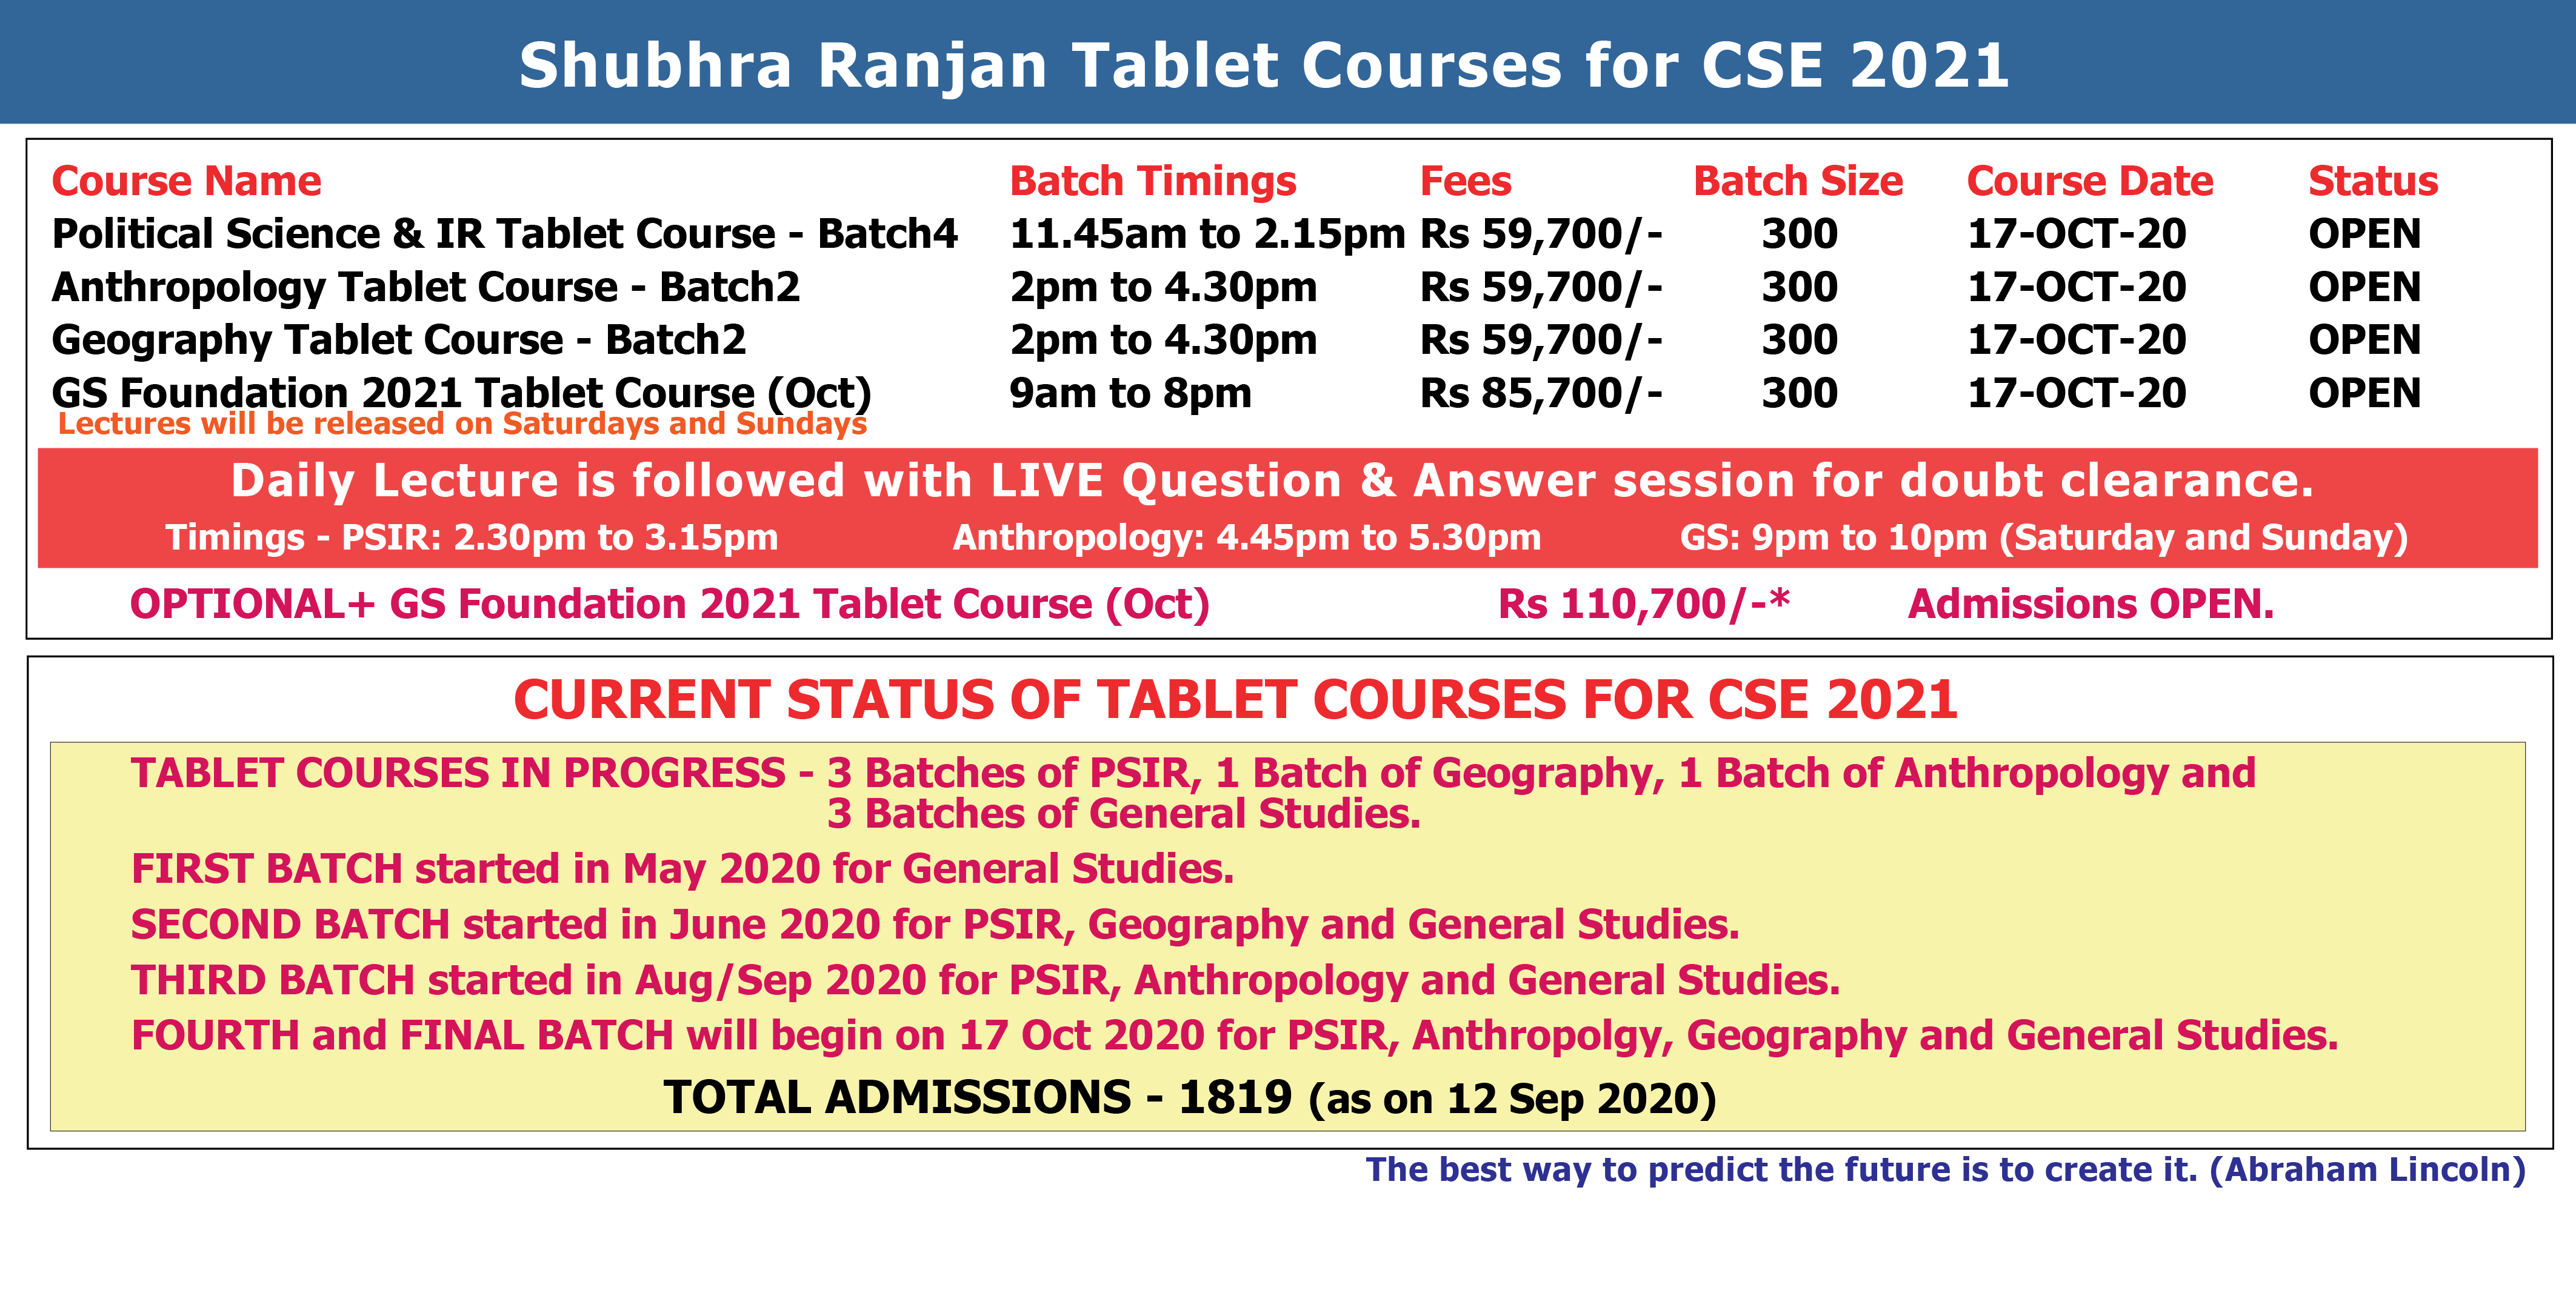 Admissions Status as on 12 Sep 2020